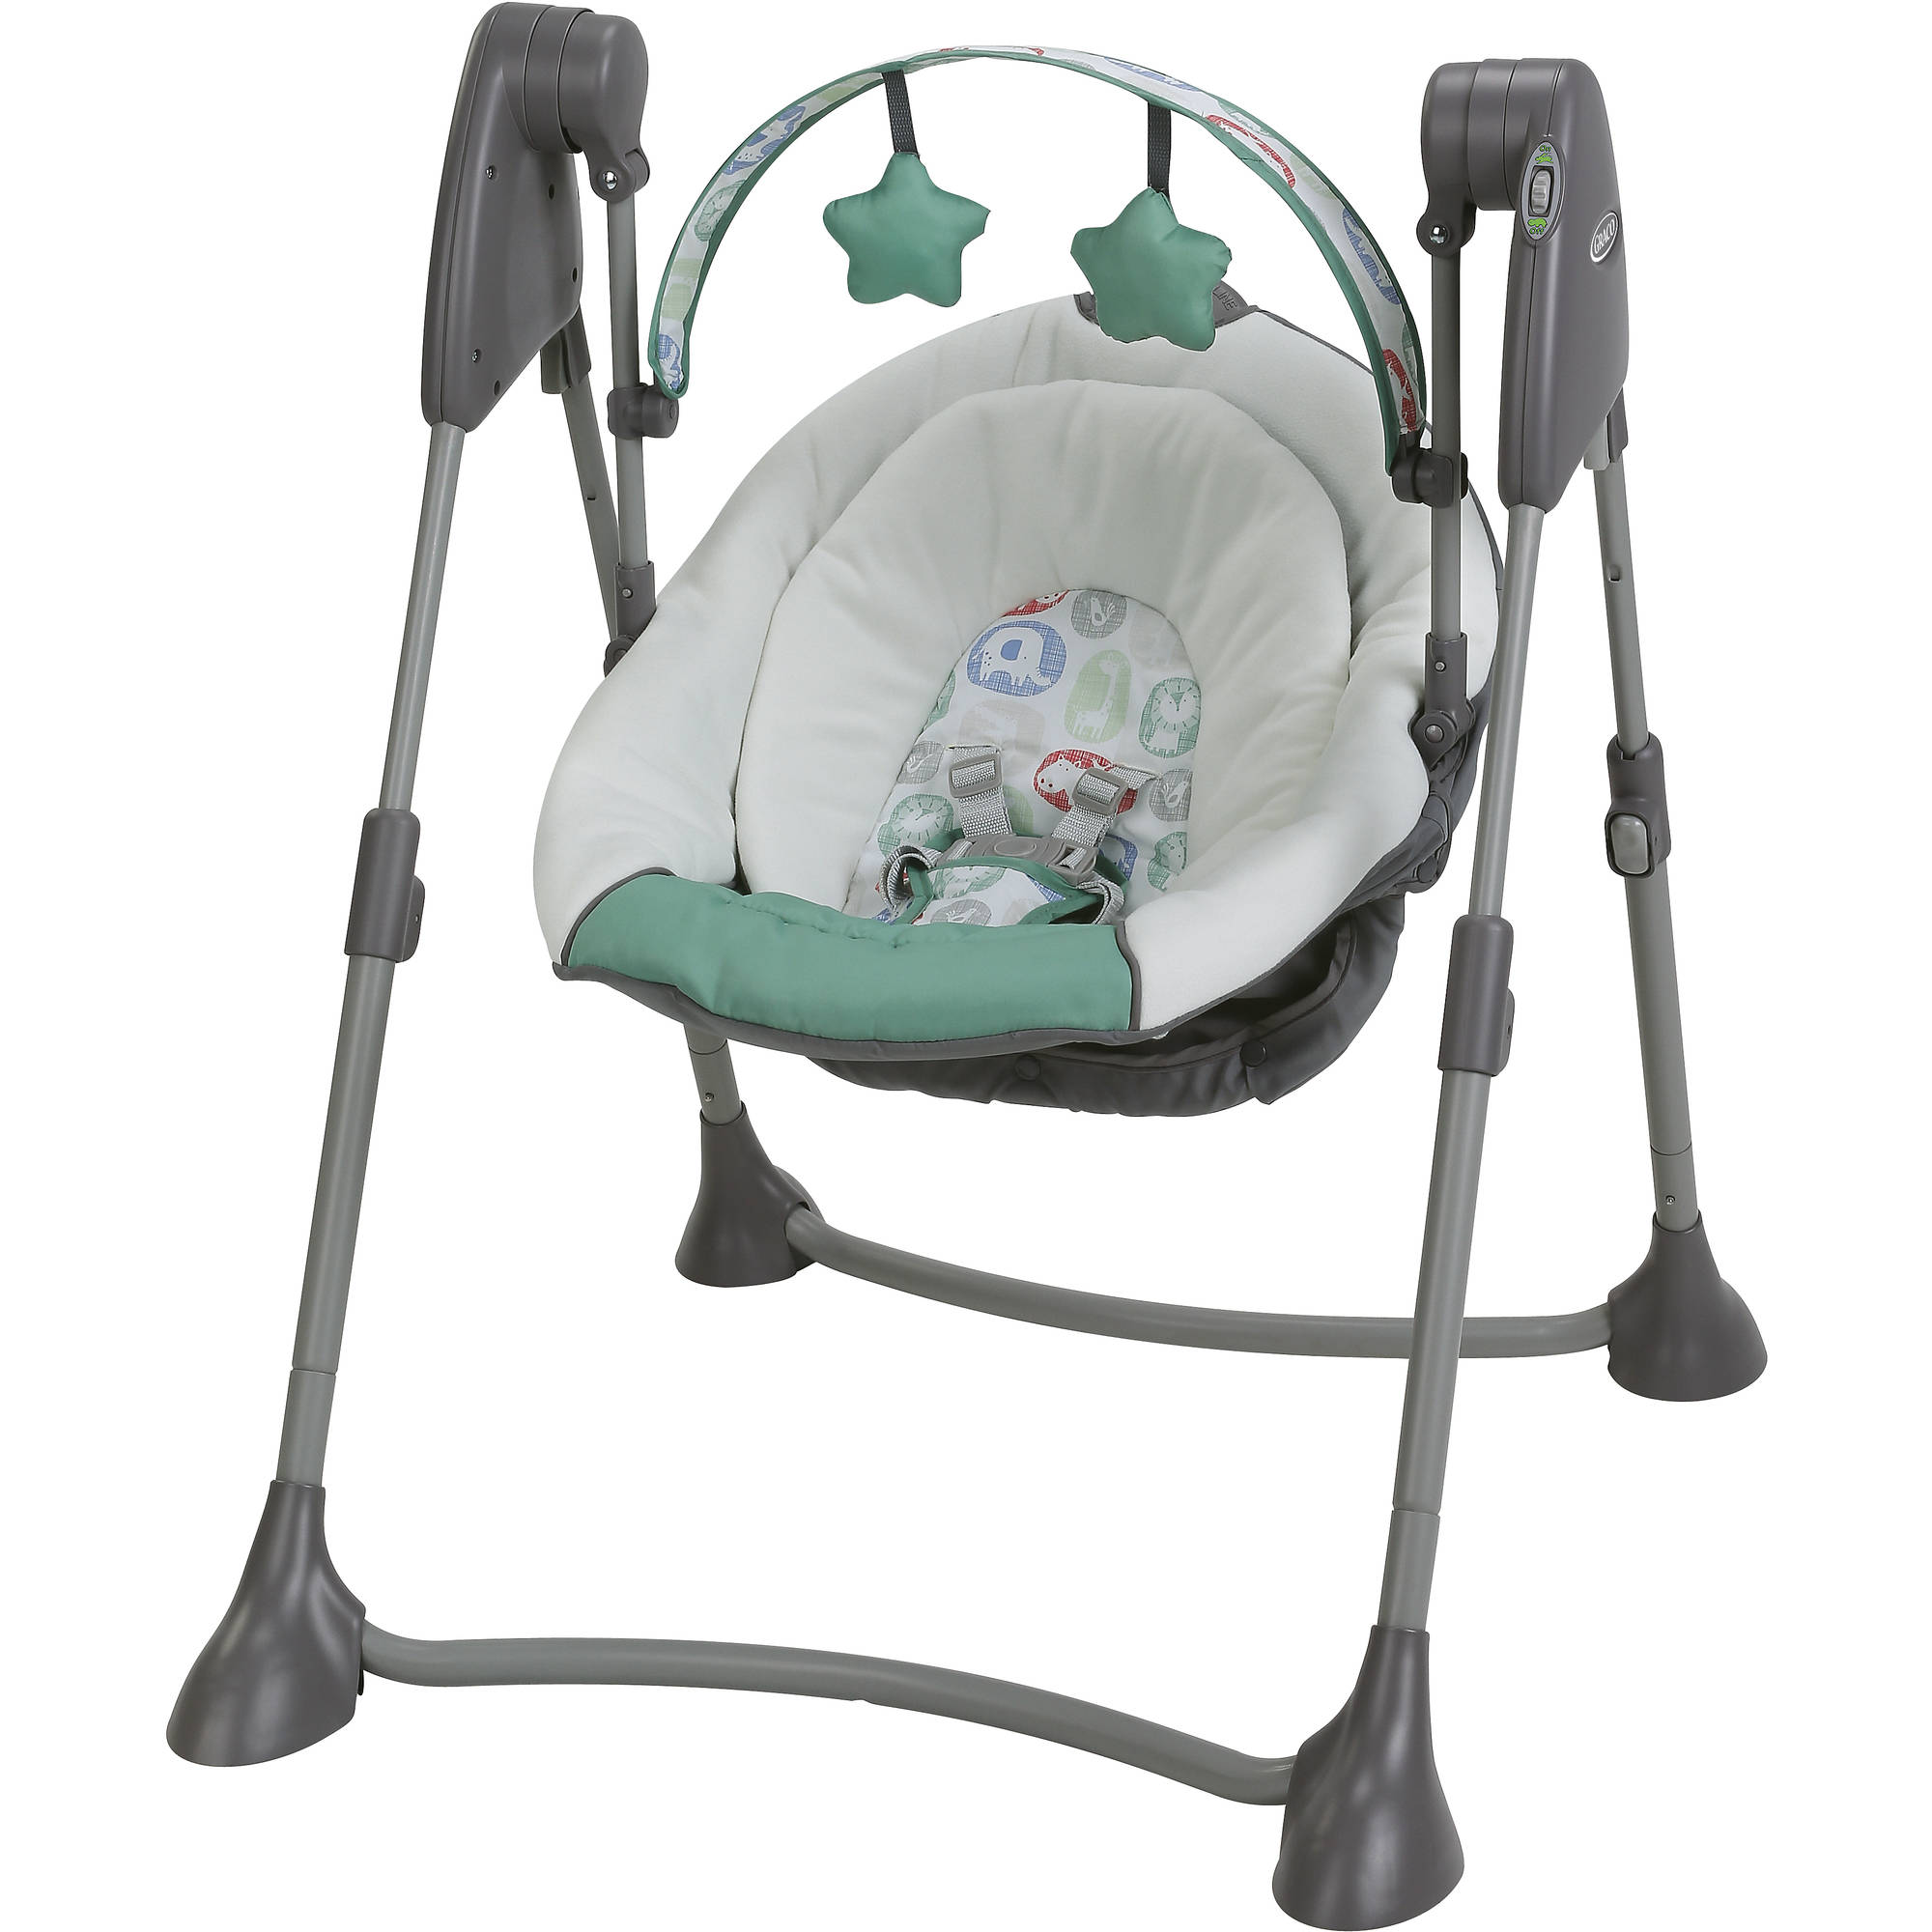 Graco Swing By Me Portable Baby Swing, Cleo